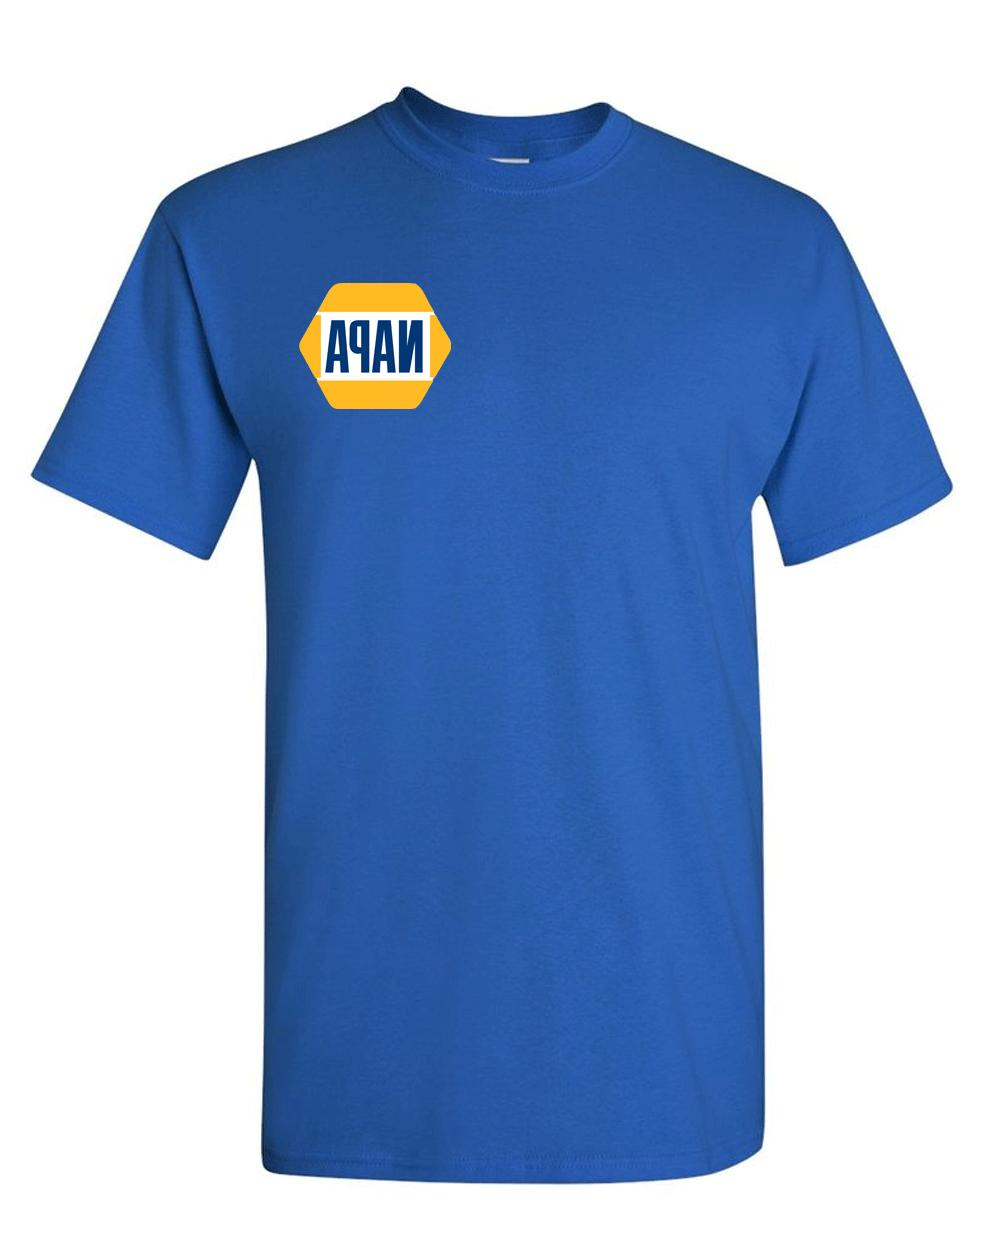 napa t shirt auto parts car repair